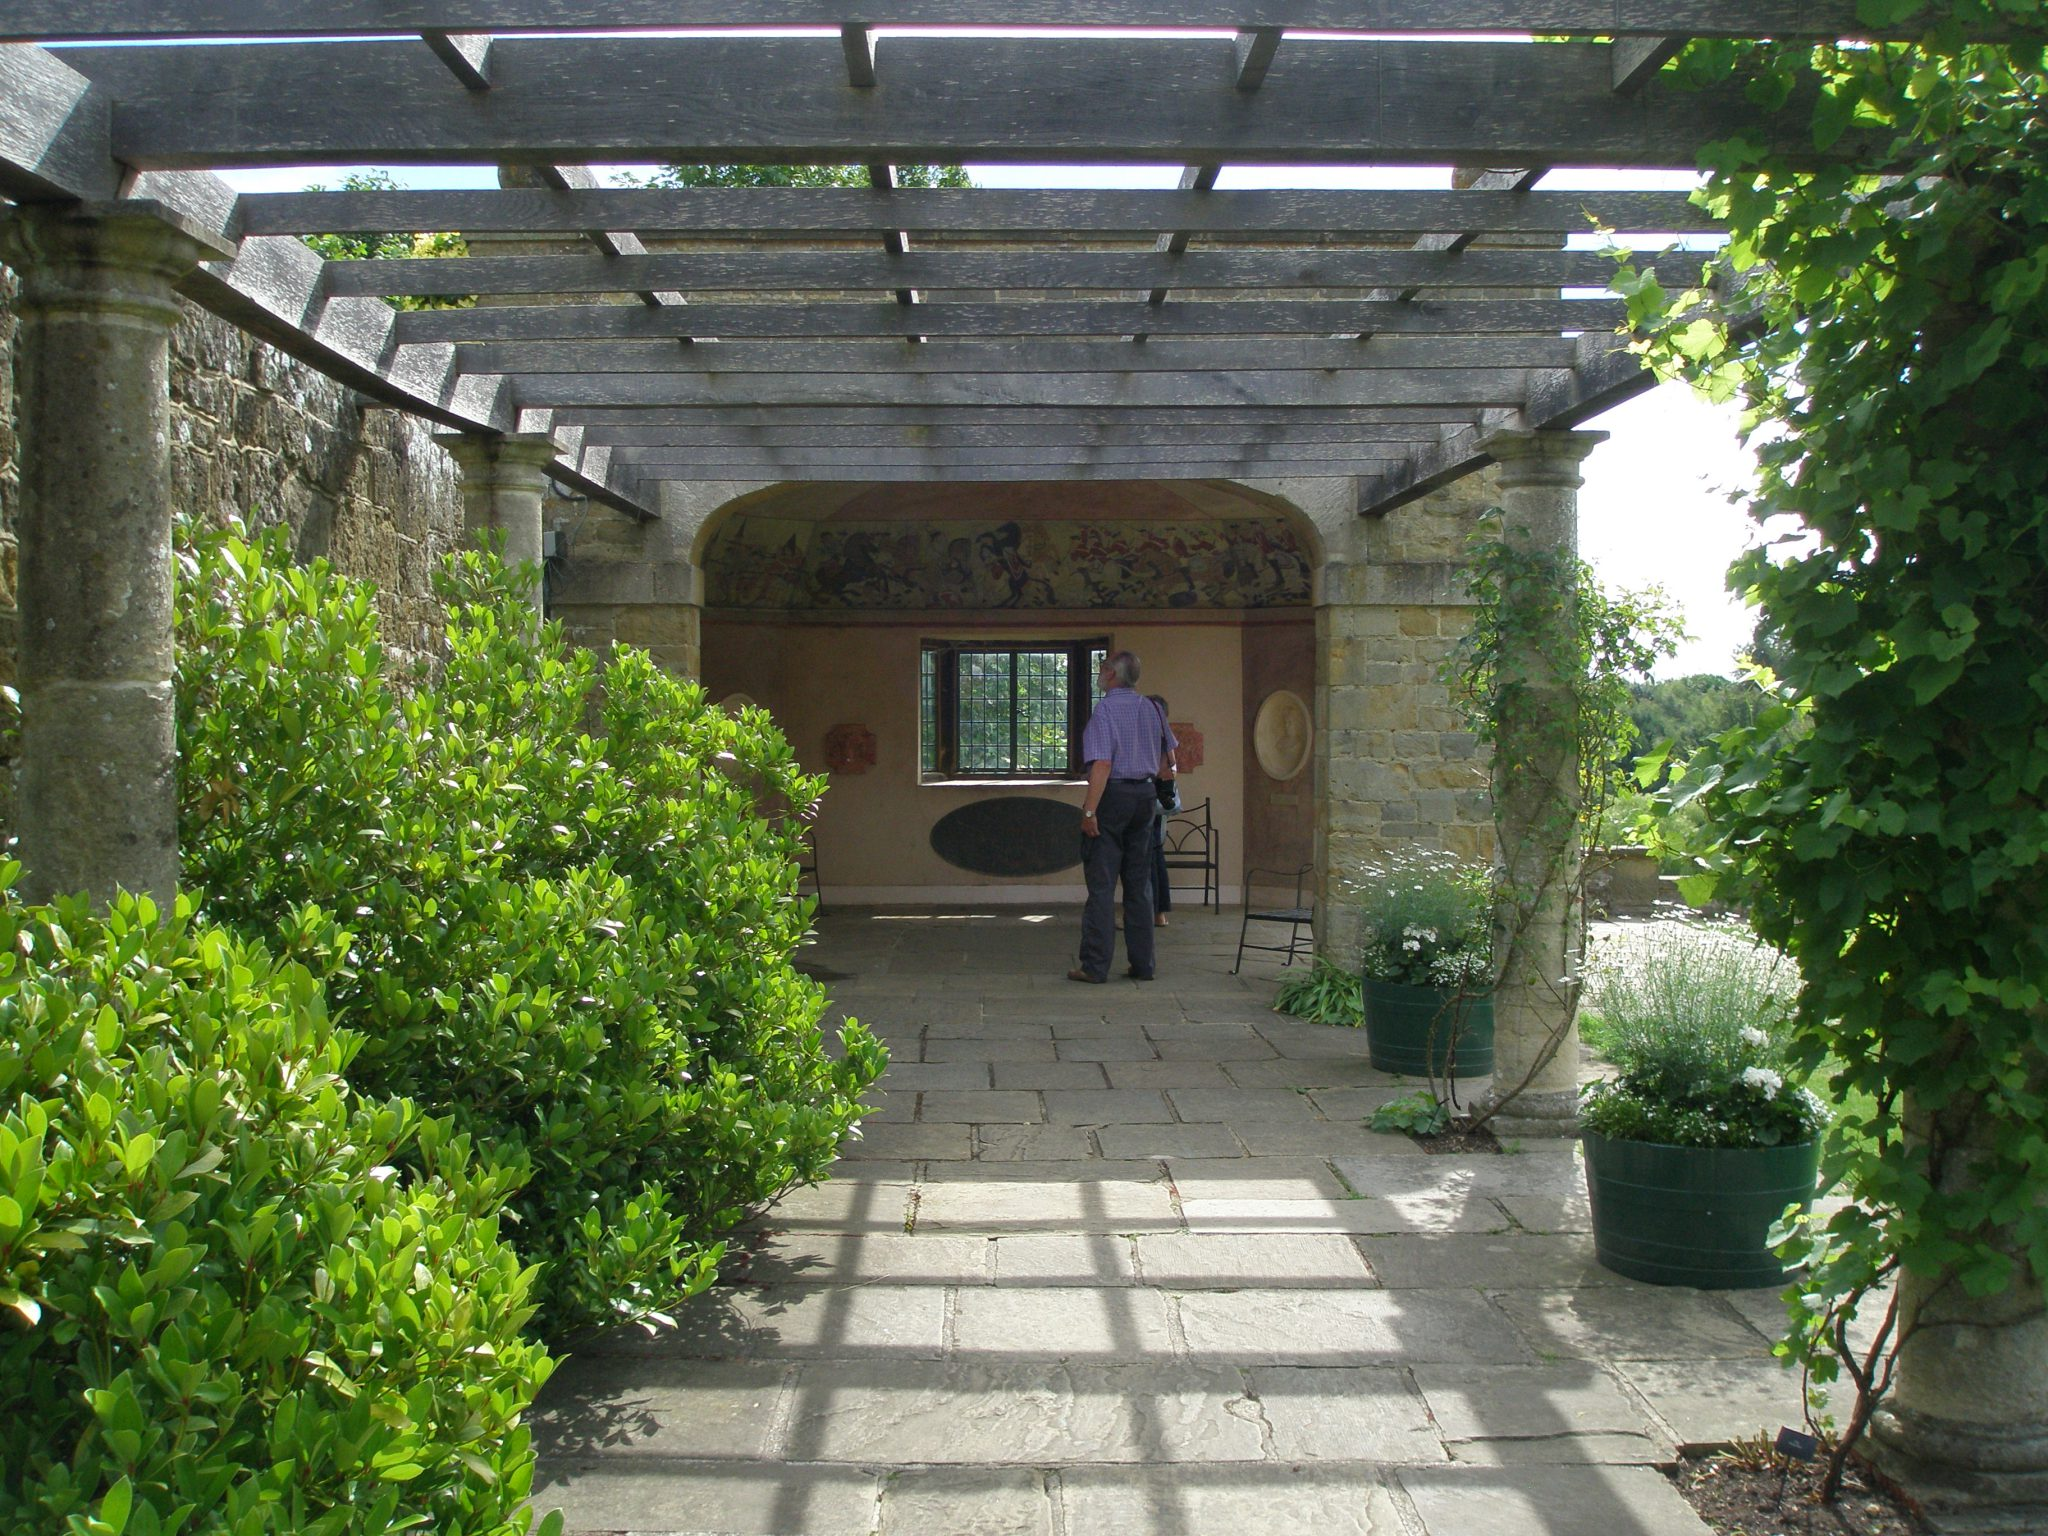 Leaving the Rose Garden, we followed a path to a Pergola, which leads to the Marlborough Pavilion.